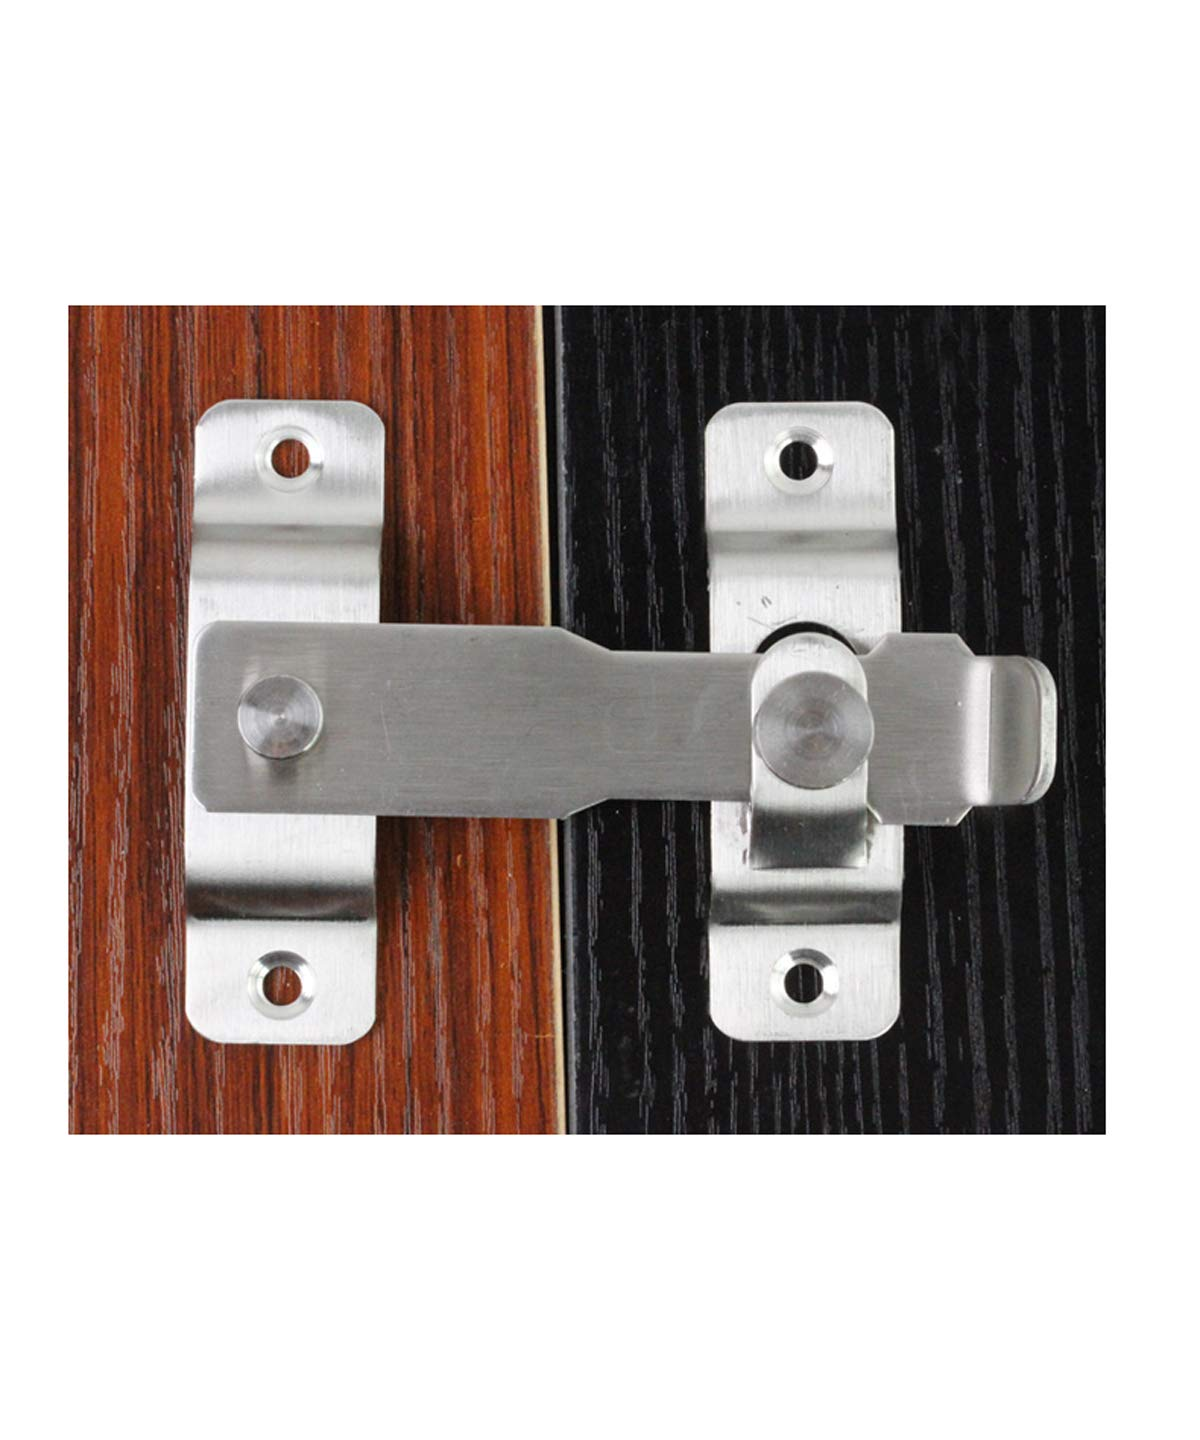 Heavy Duty Stainless Steel Flip Latch Door Lock With fixing screws brushed stainless steel surface